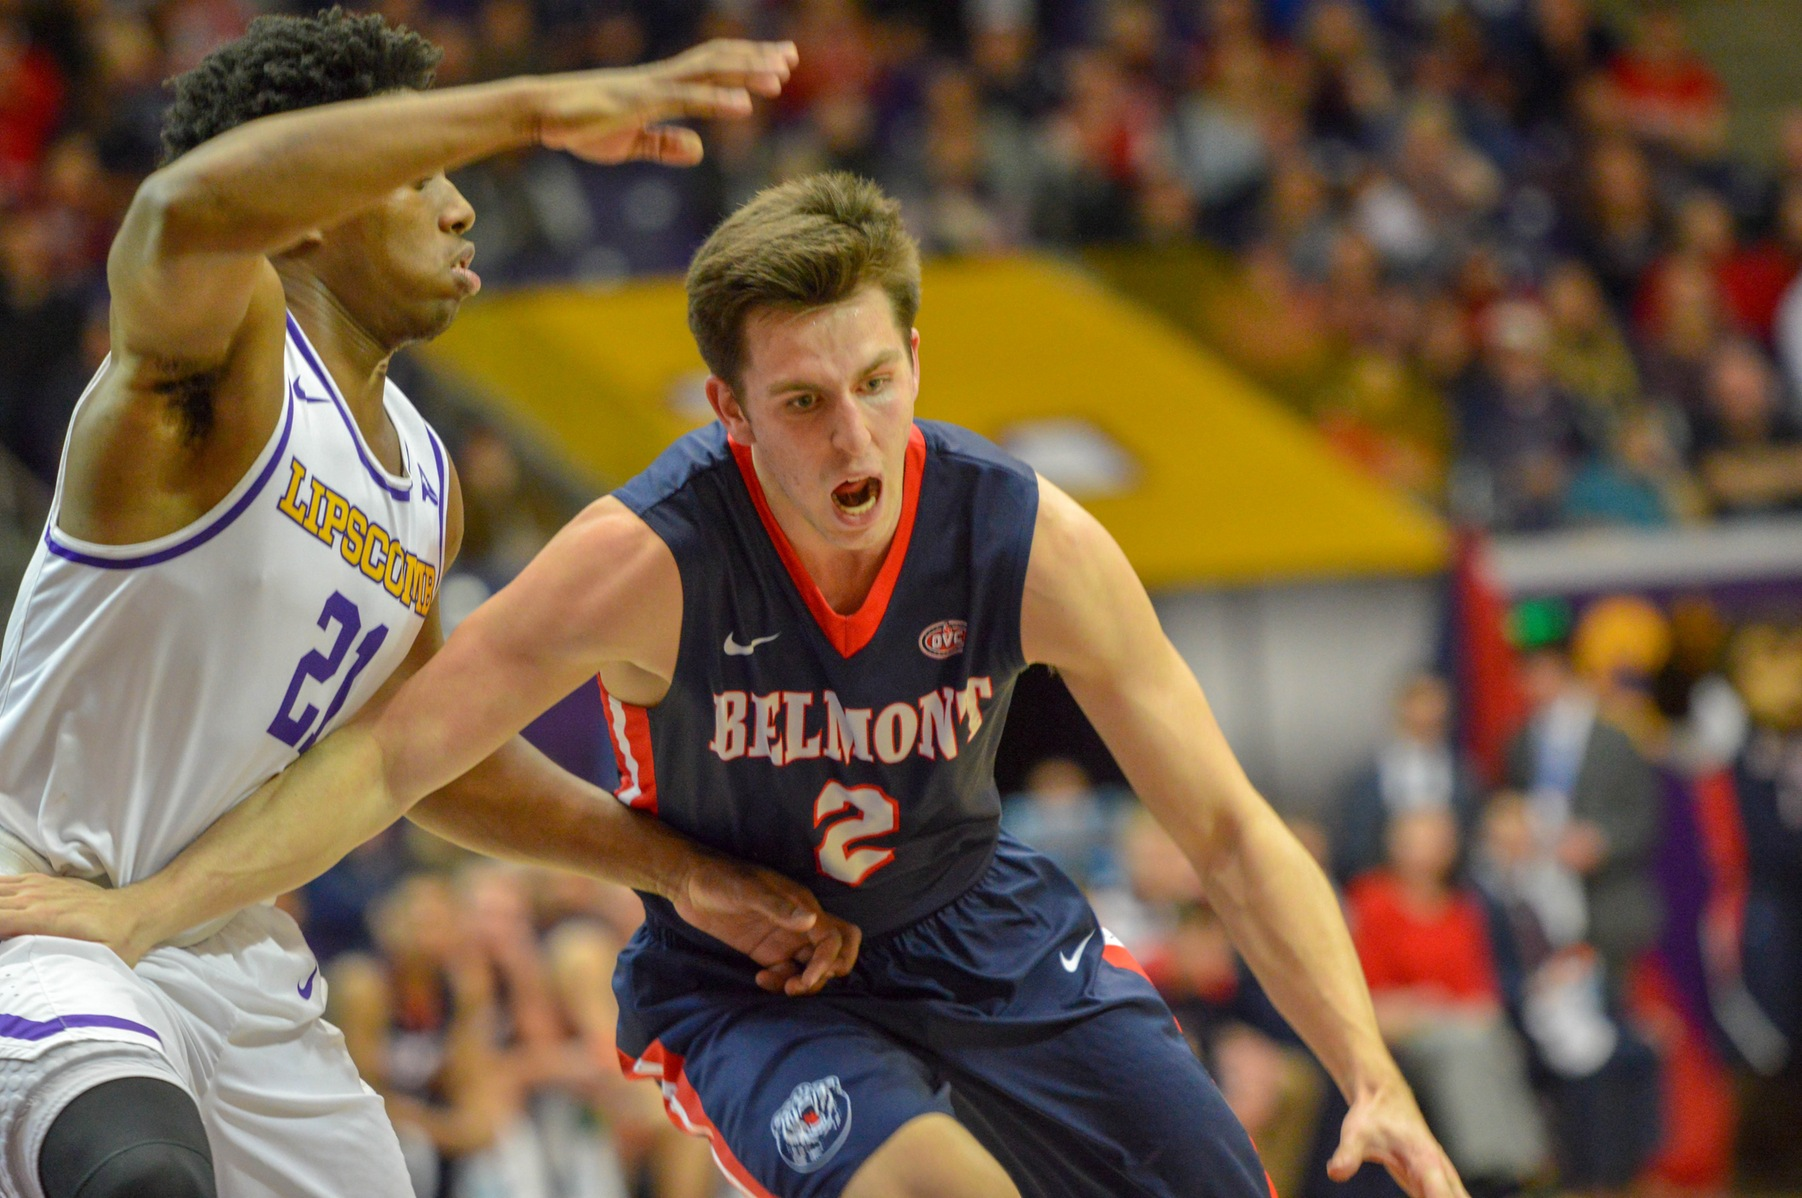 Photo Courtesy: Belmont University Athletics/Hannah Jo Riley